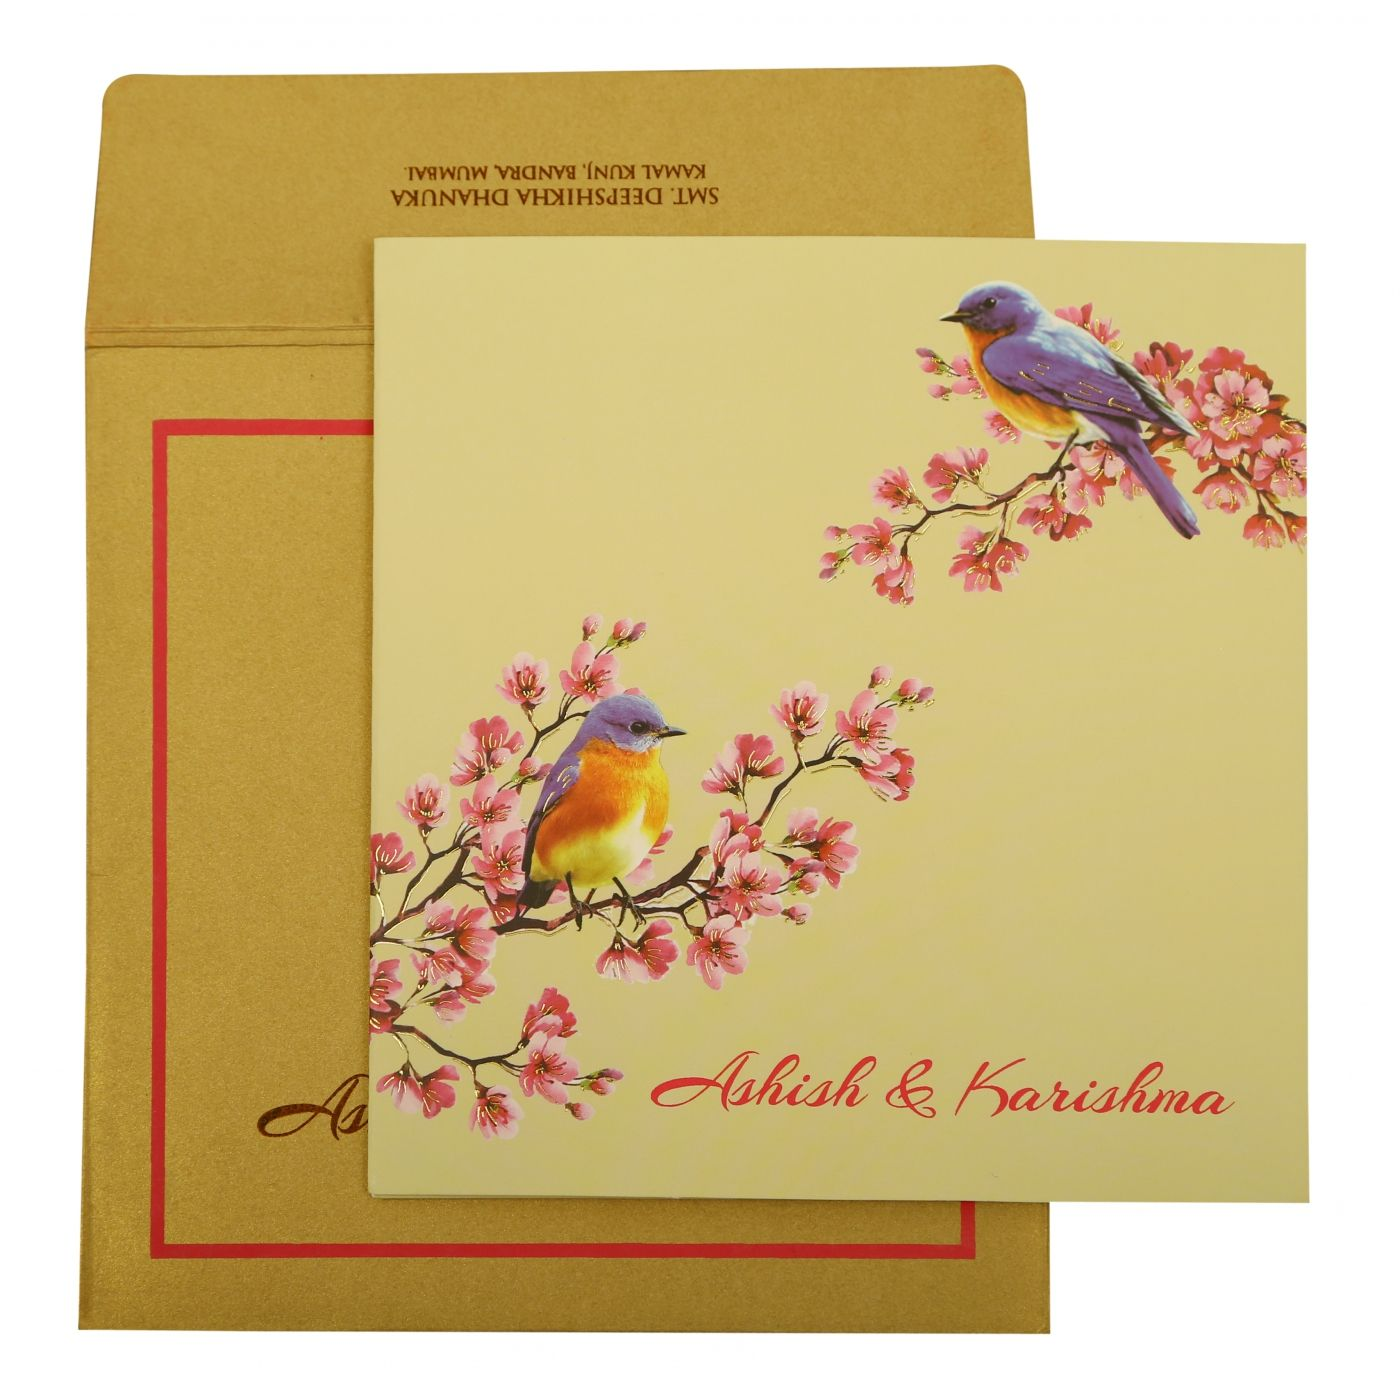 OFF-WHITE MATTE FOIL STAMPED WEDDING INVITATION : CW-1903 - IndianWeddingCards